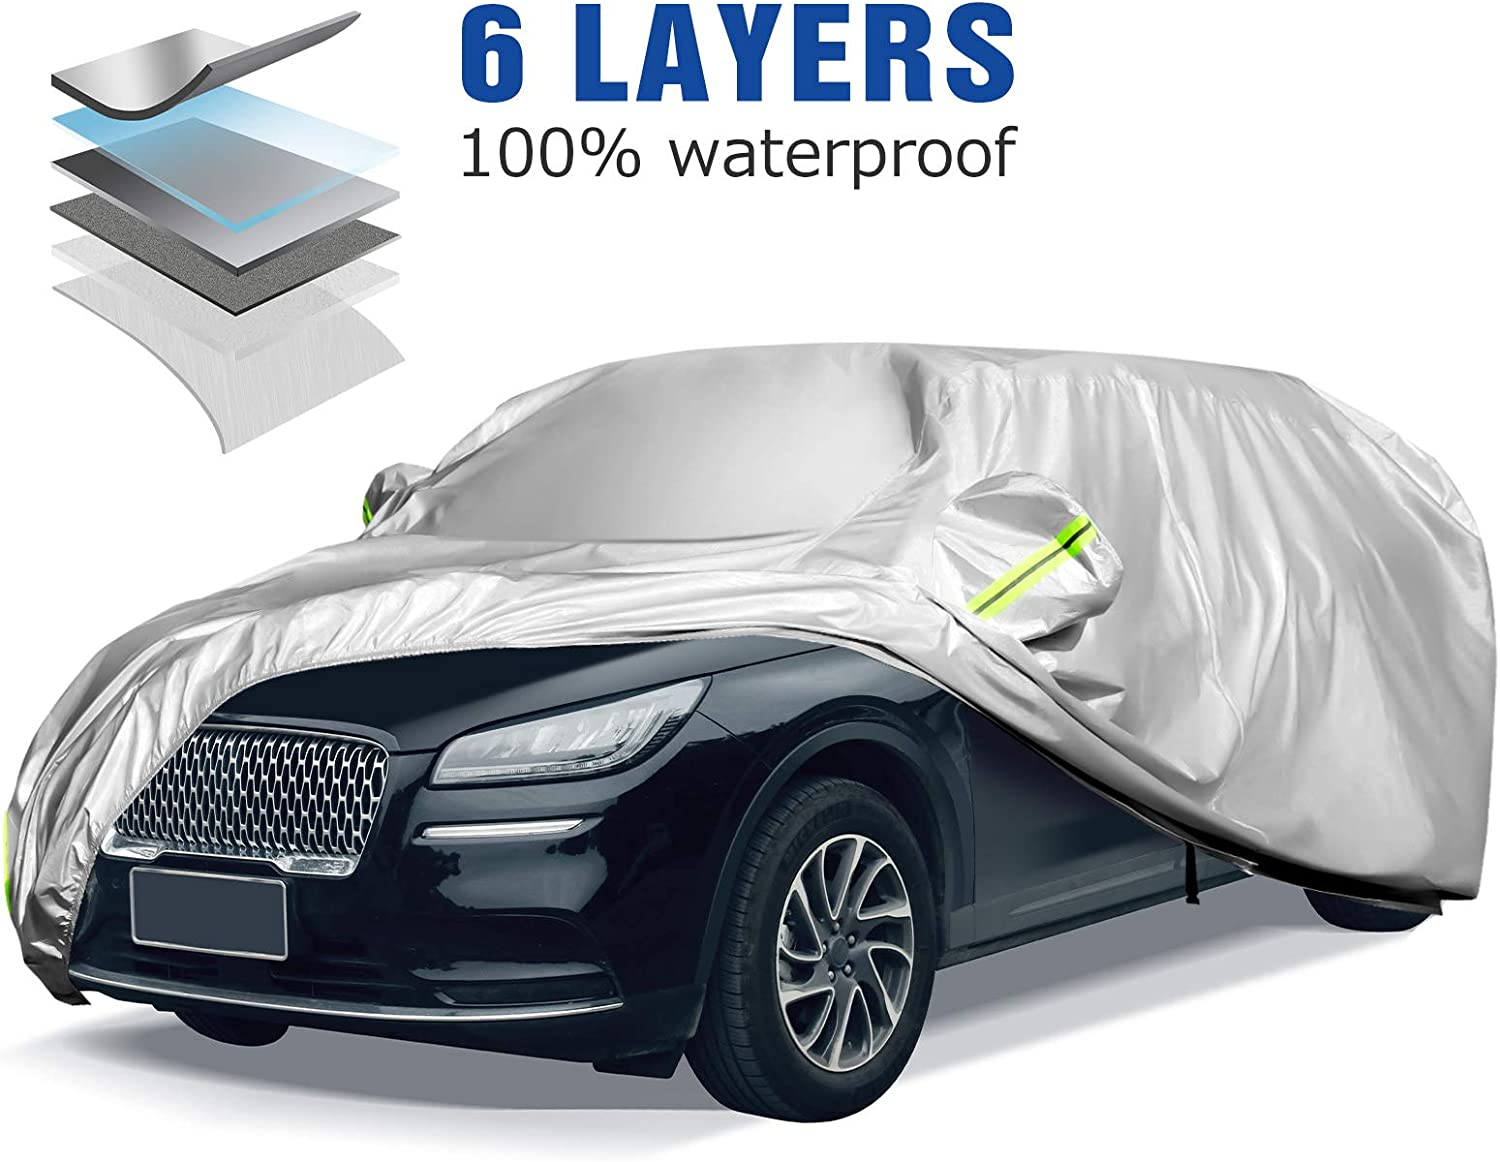 ELUTO SUV Car Cover Waterproof All Weather 6 Layers SUV Cover for Automobiles Outdoor Indoor Full Car Covers with Zipper UV Protection Windproof Dustproof Snowproof Hatchback Car Cover Up to 201